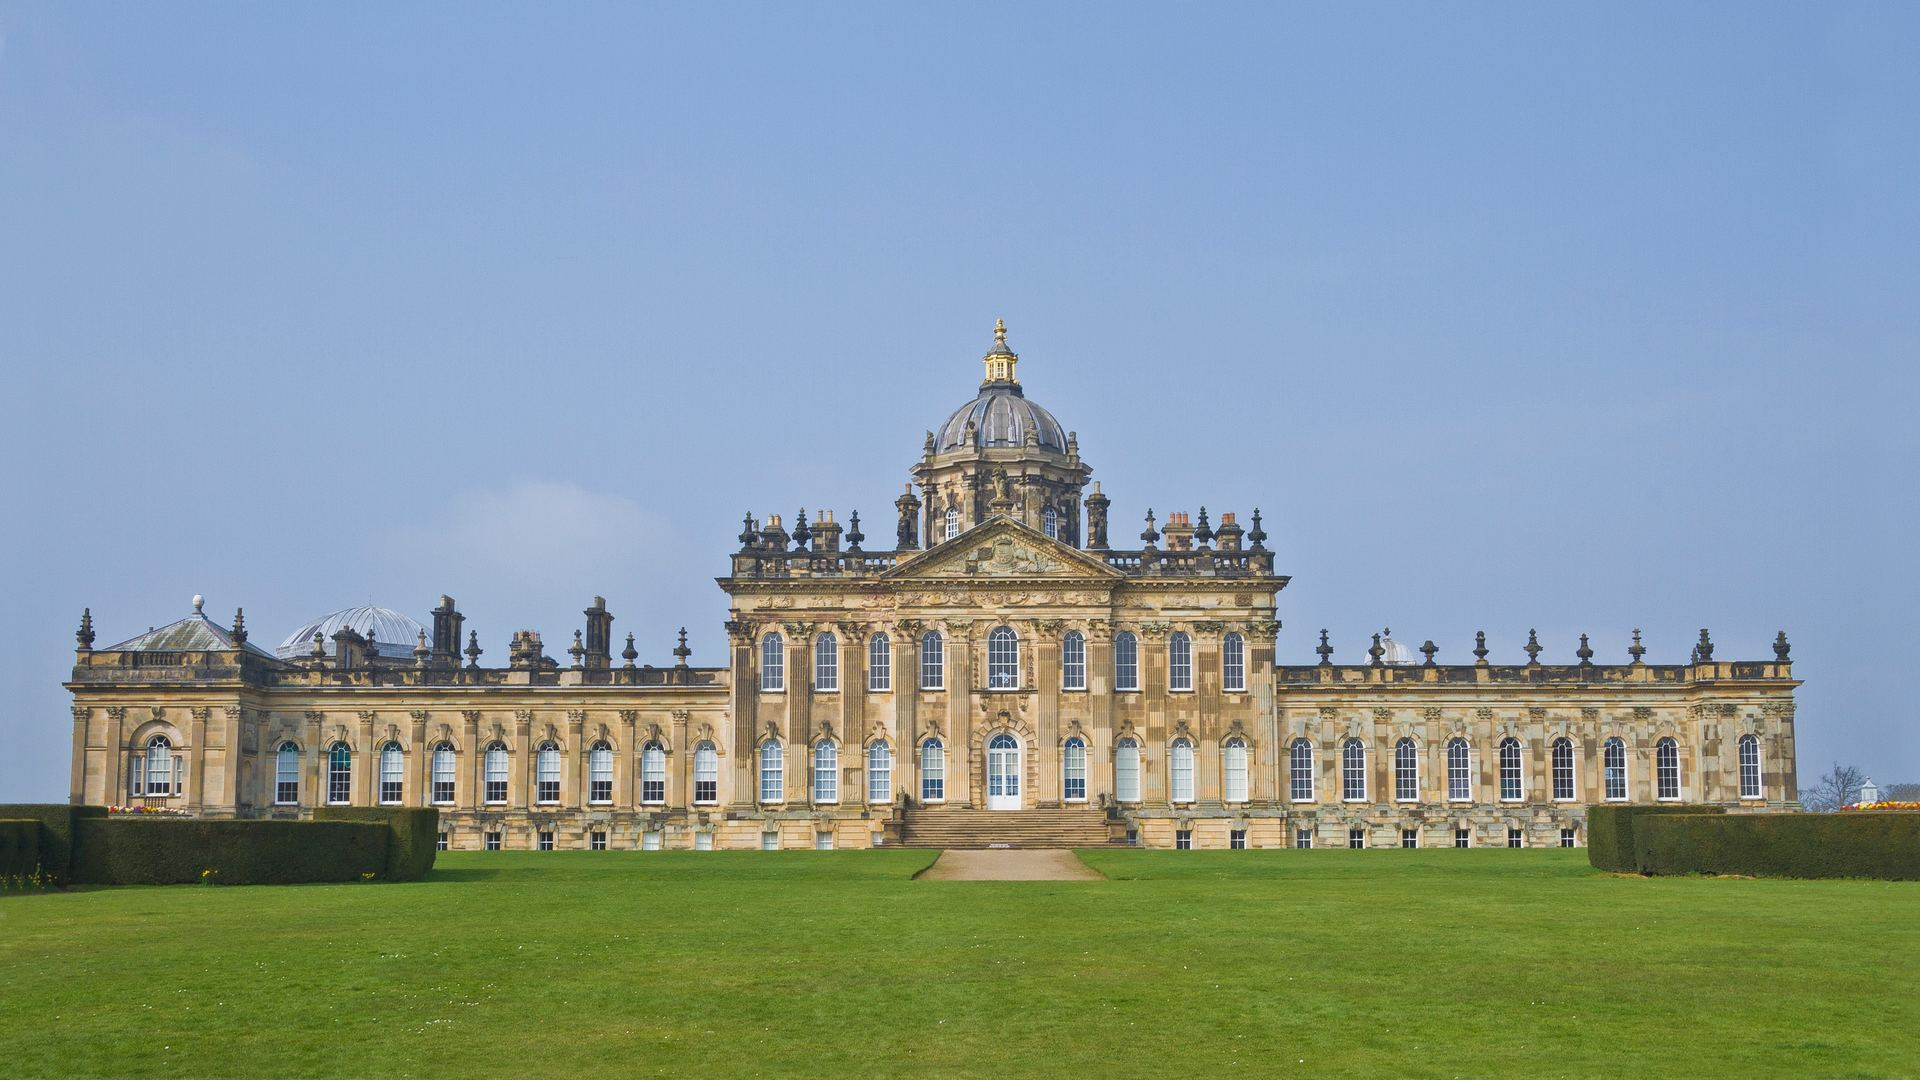 Castle Howard York Photo by Michael D Beckwith on Unsplash